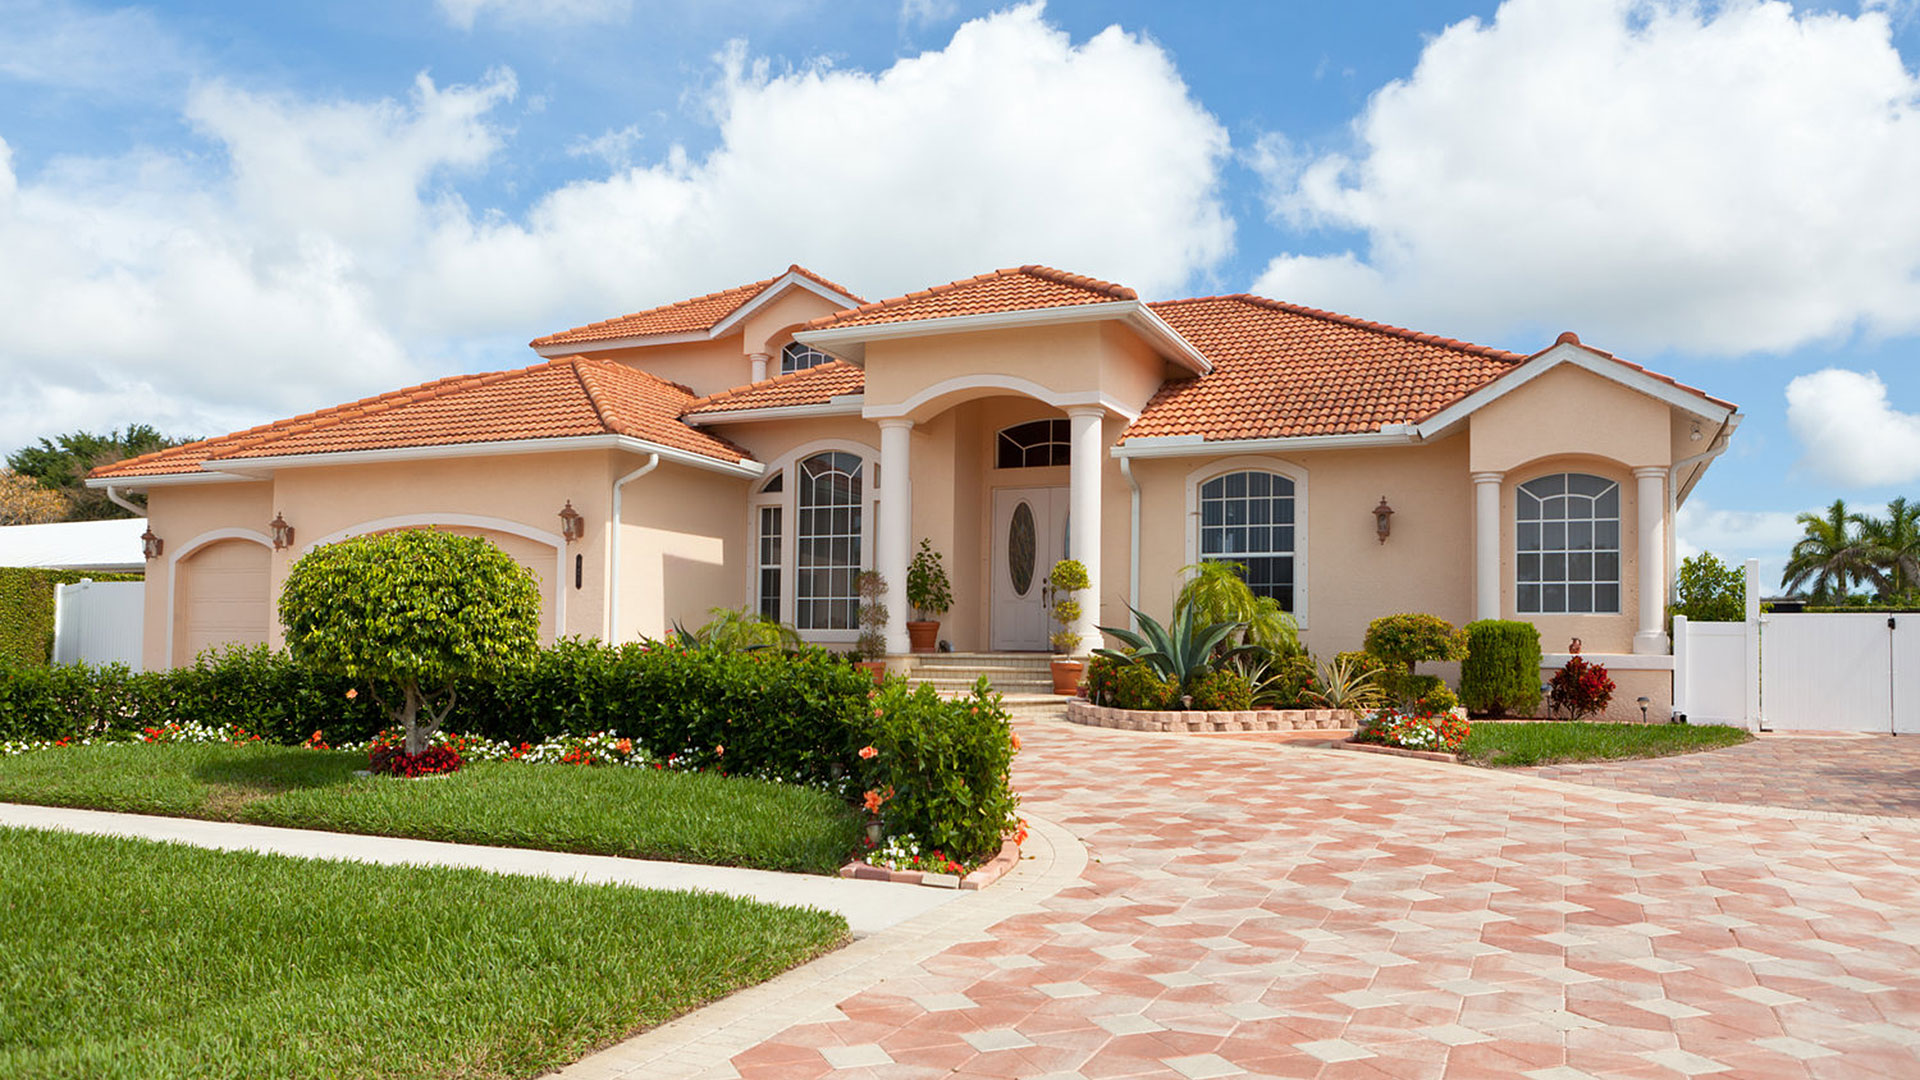 Solid Rock Home Inspections, Belleair Bluffs Home Inspection